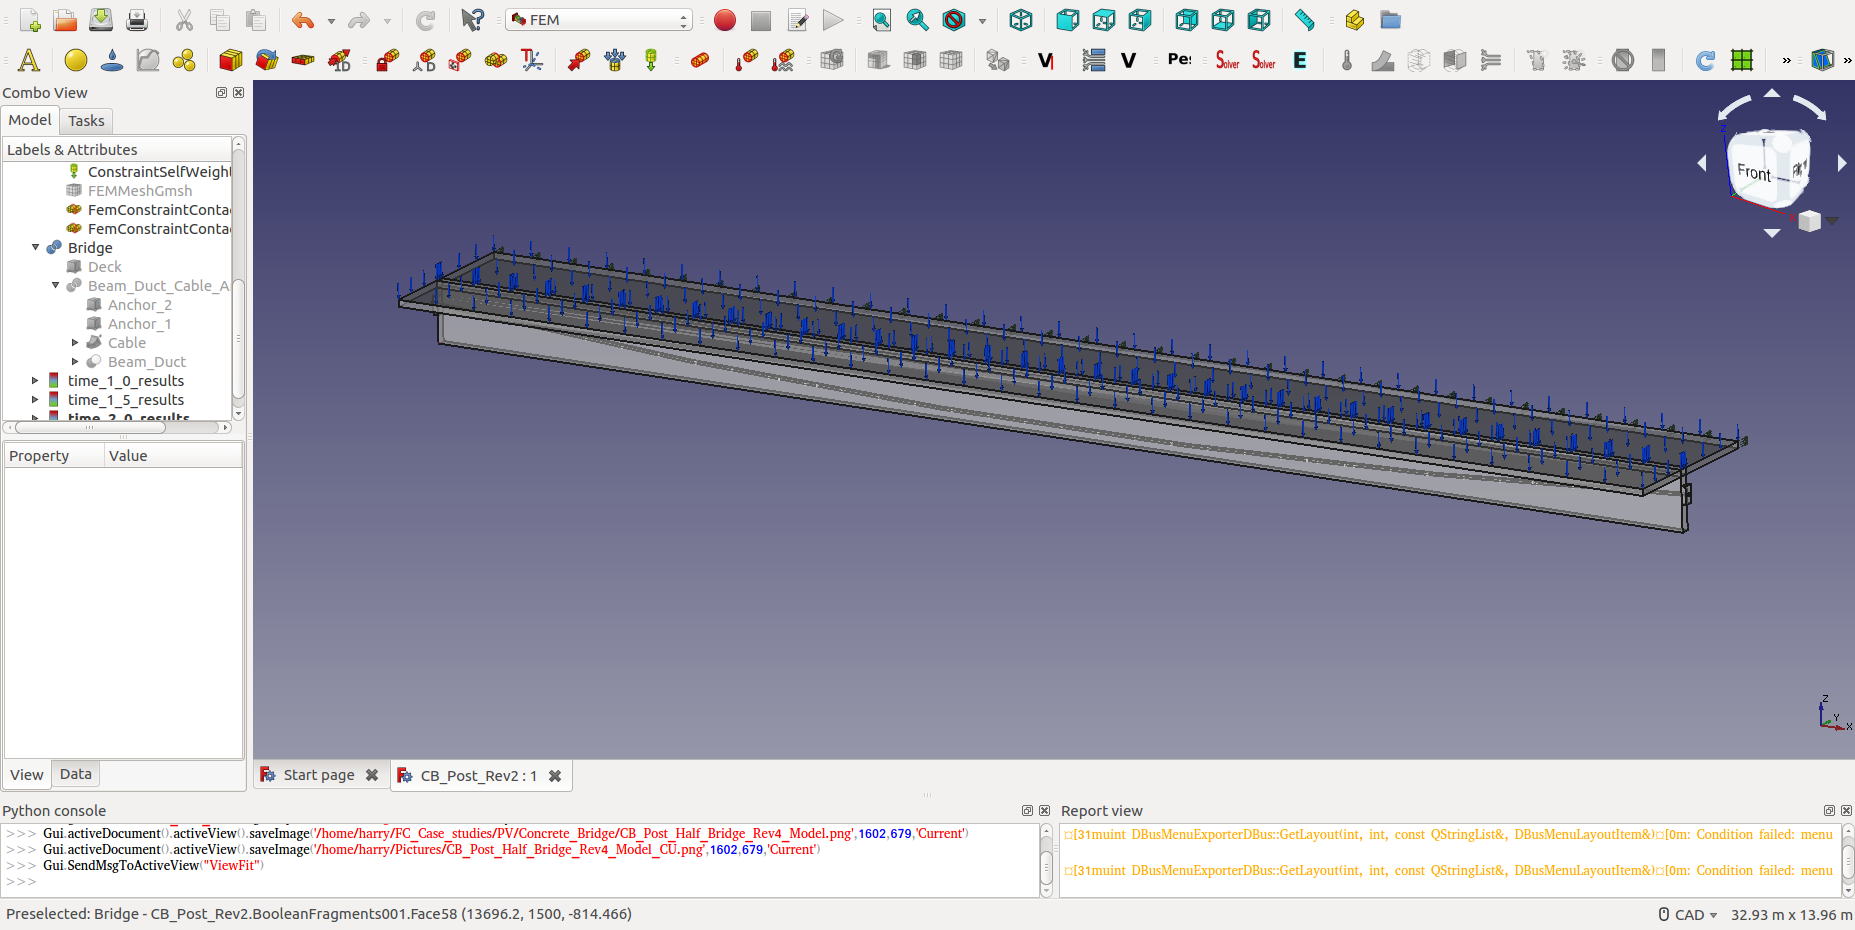 CB_Post_Half_Bridge_Rev4_Model.png